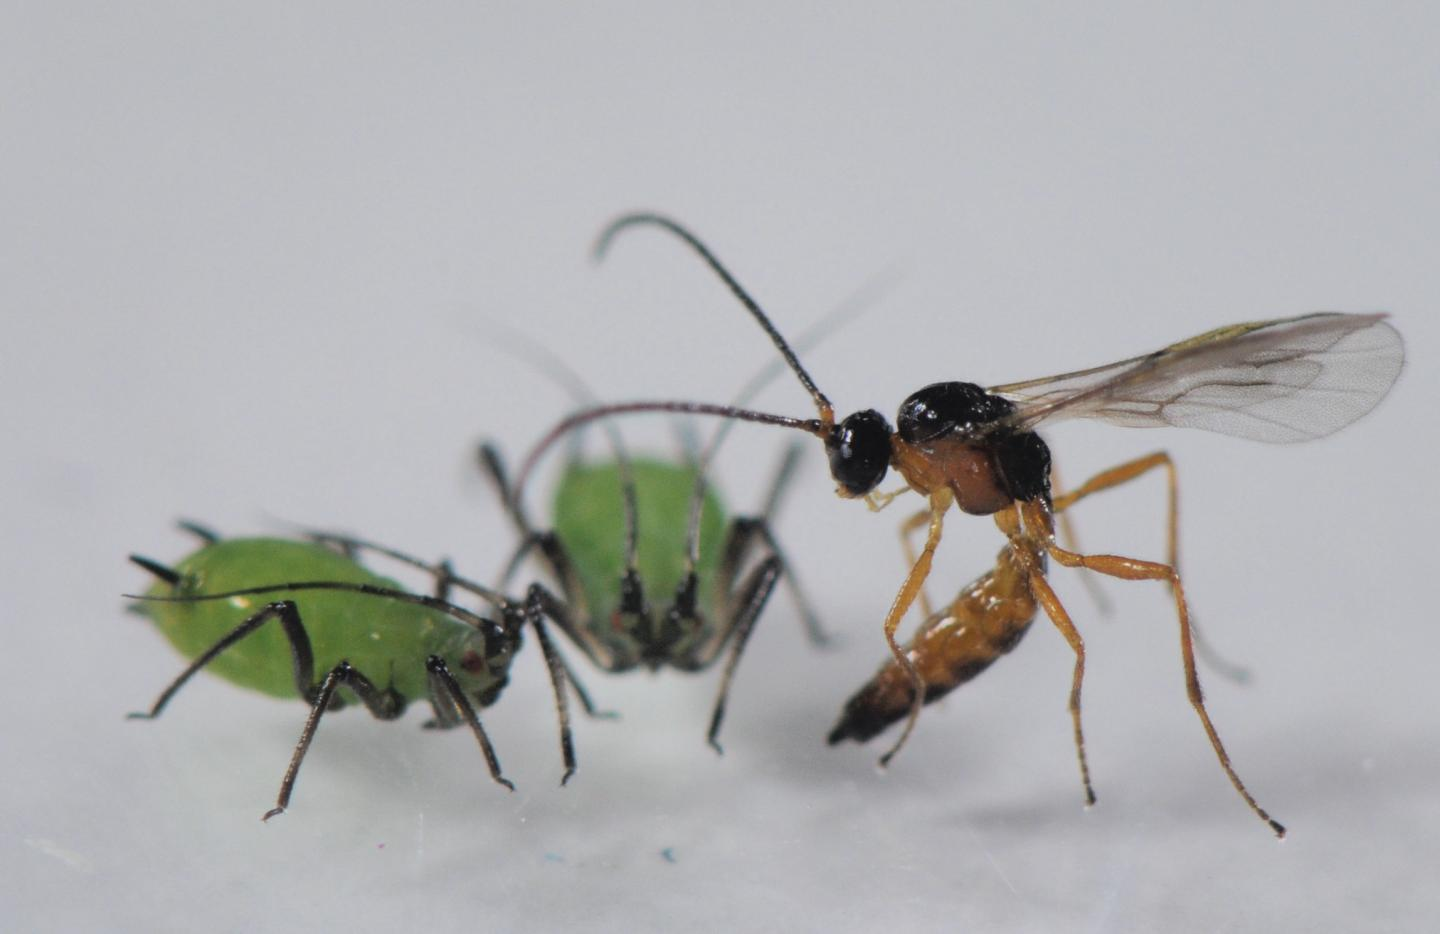 Parasitoid Wasp Attacking Aphids